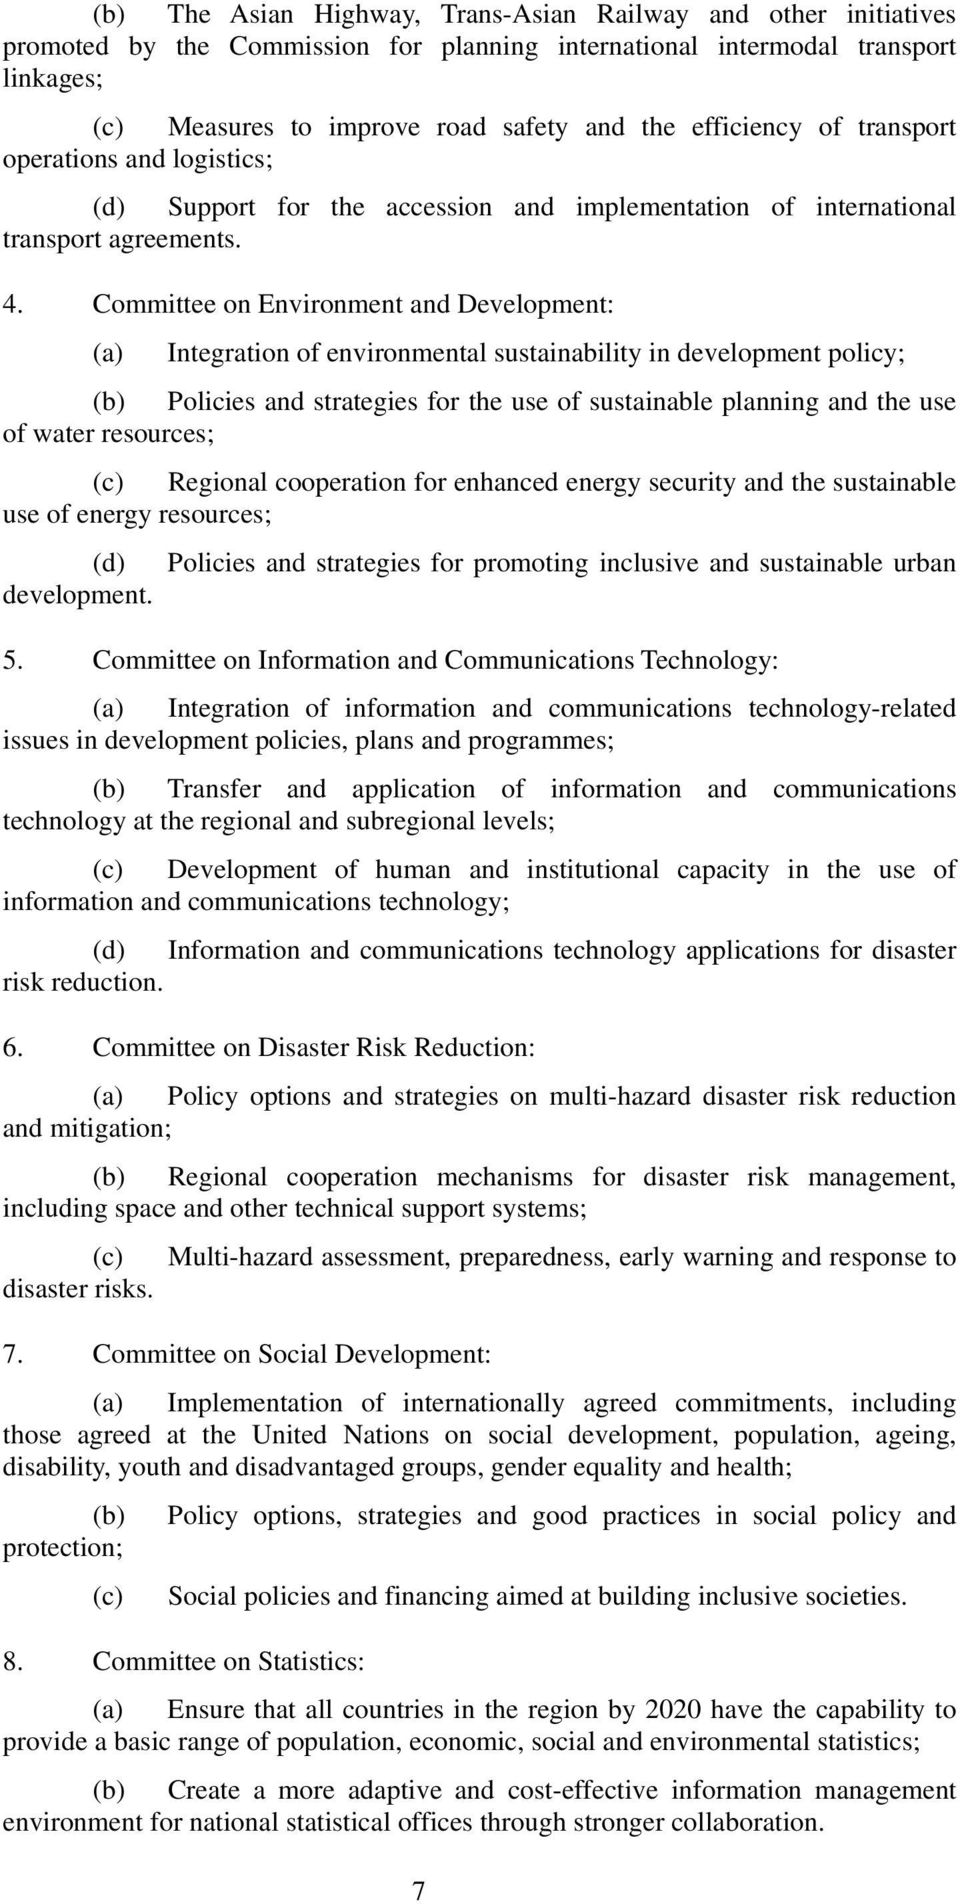 Committee on Environment and Development: (a) Integration of environmental sustainability in development policy; (b) Policies and strategies for the use of sustainable planning and the use of water